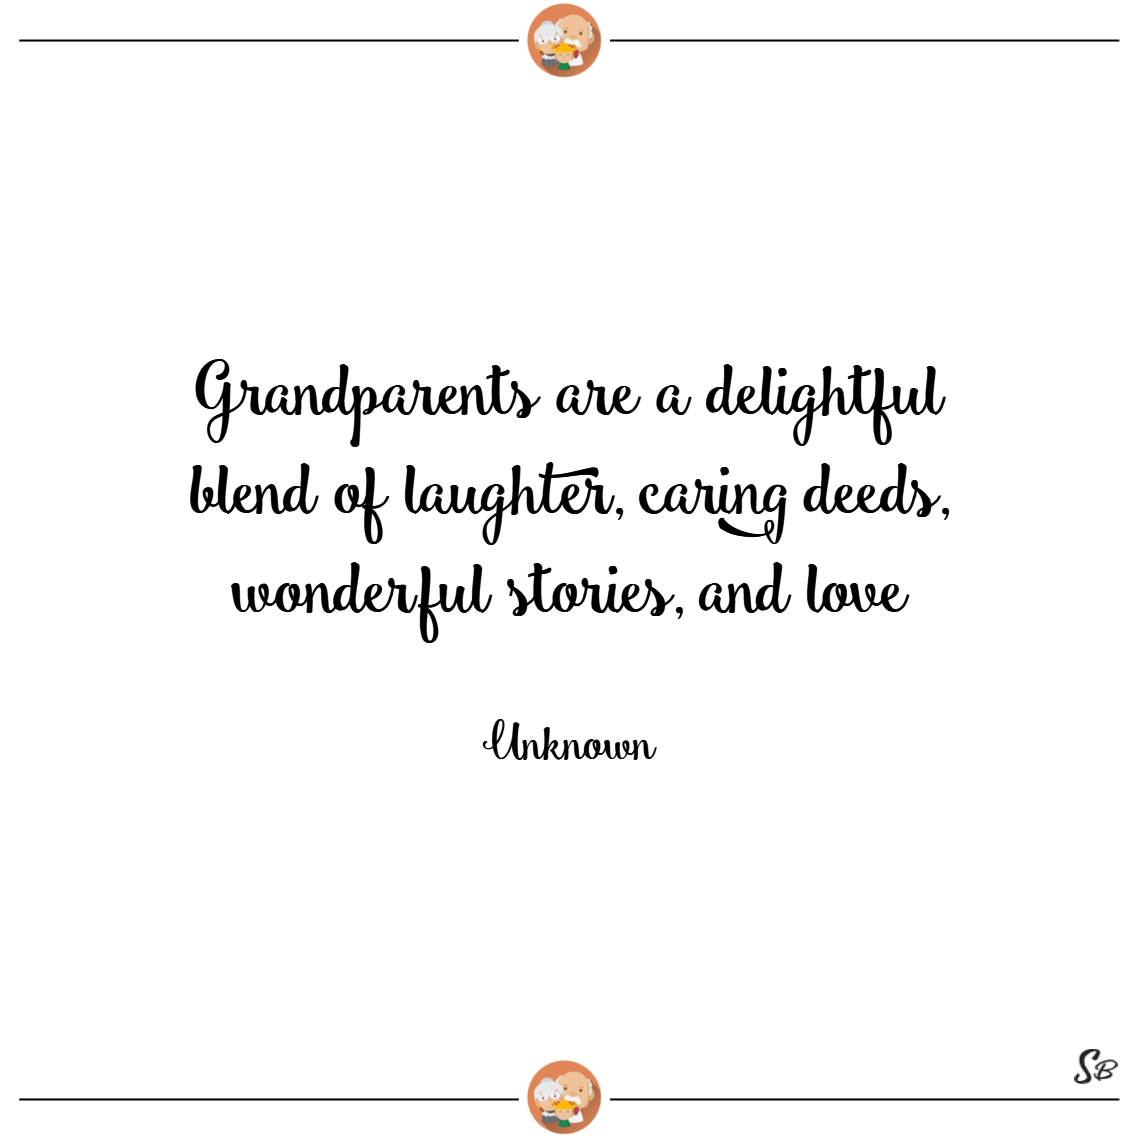 Grandparents are a delightful blend of laughter, caring deeds, wonderful stories, and love. – unknown